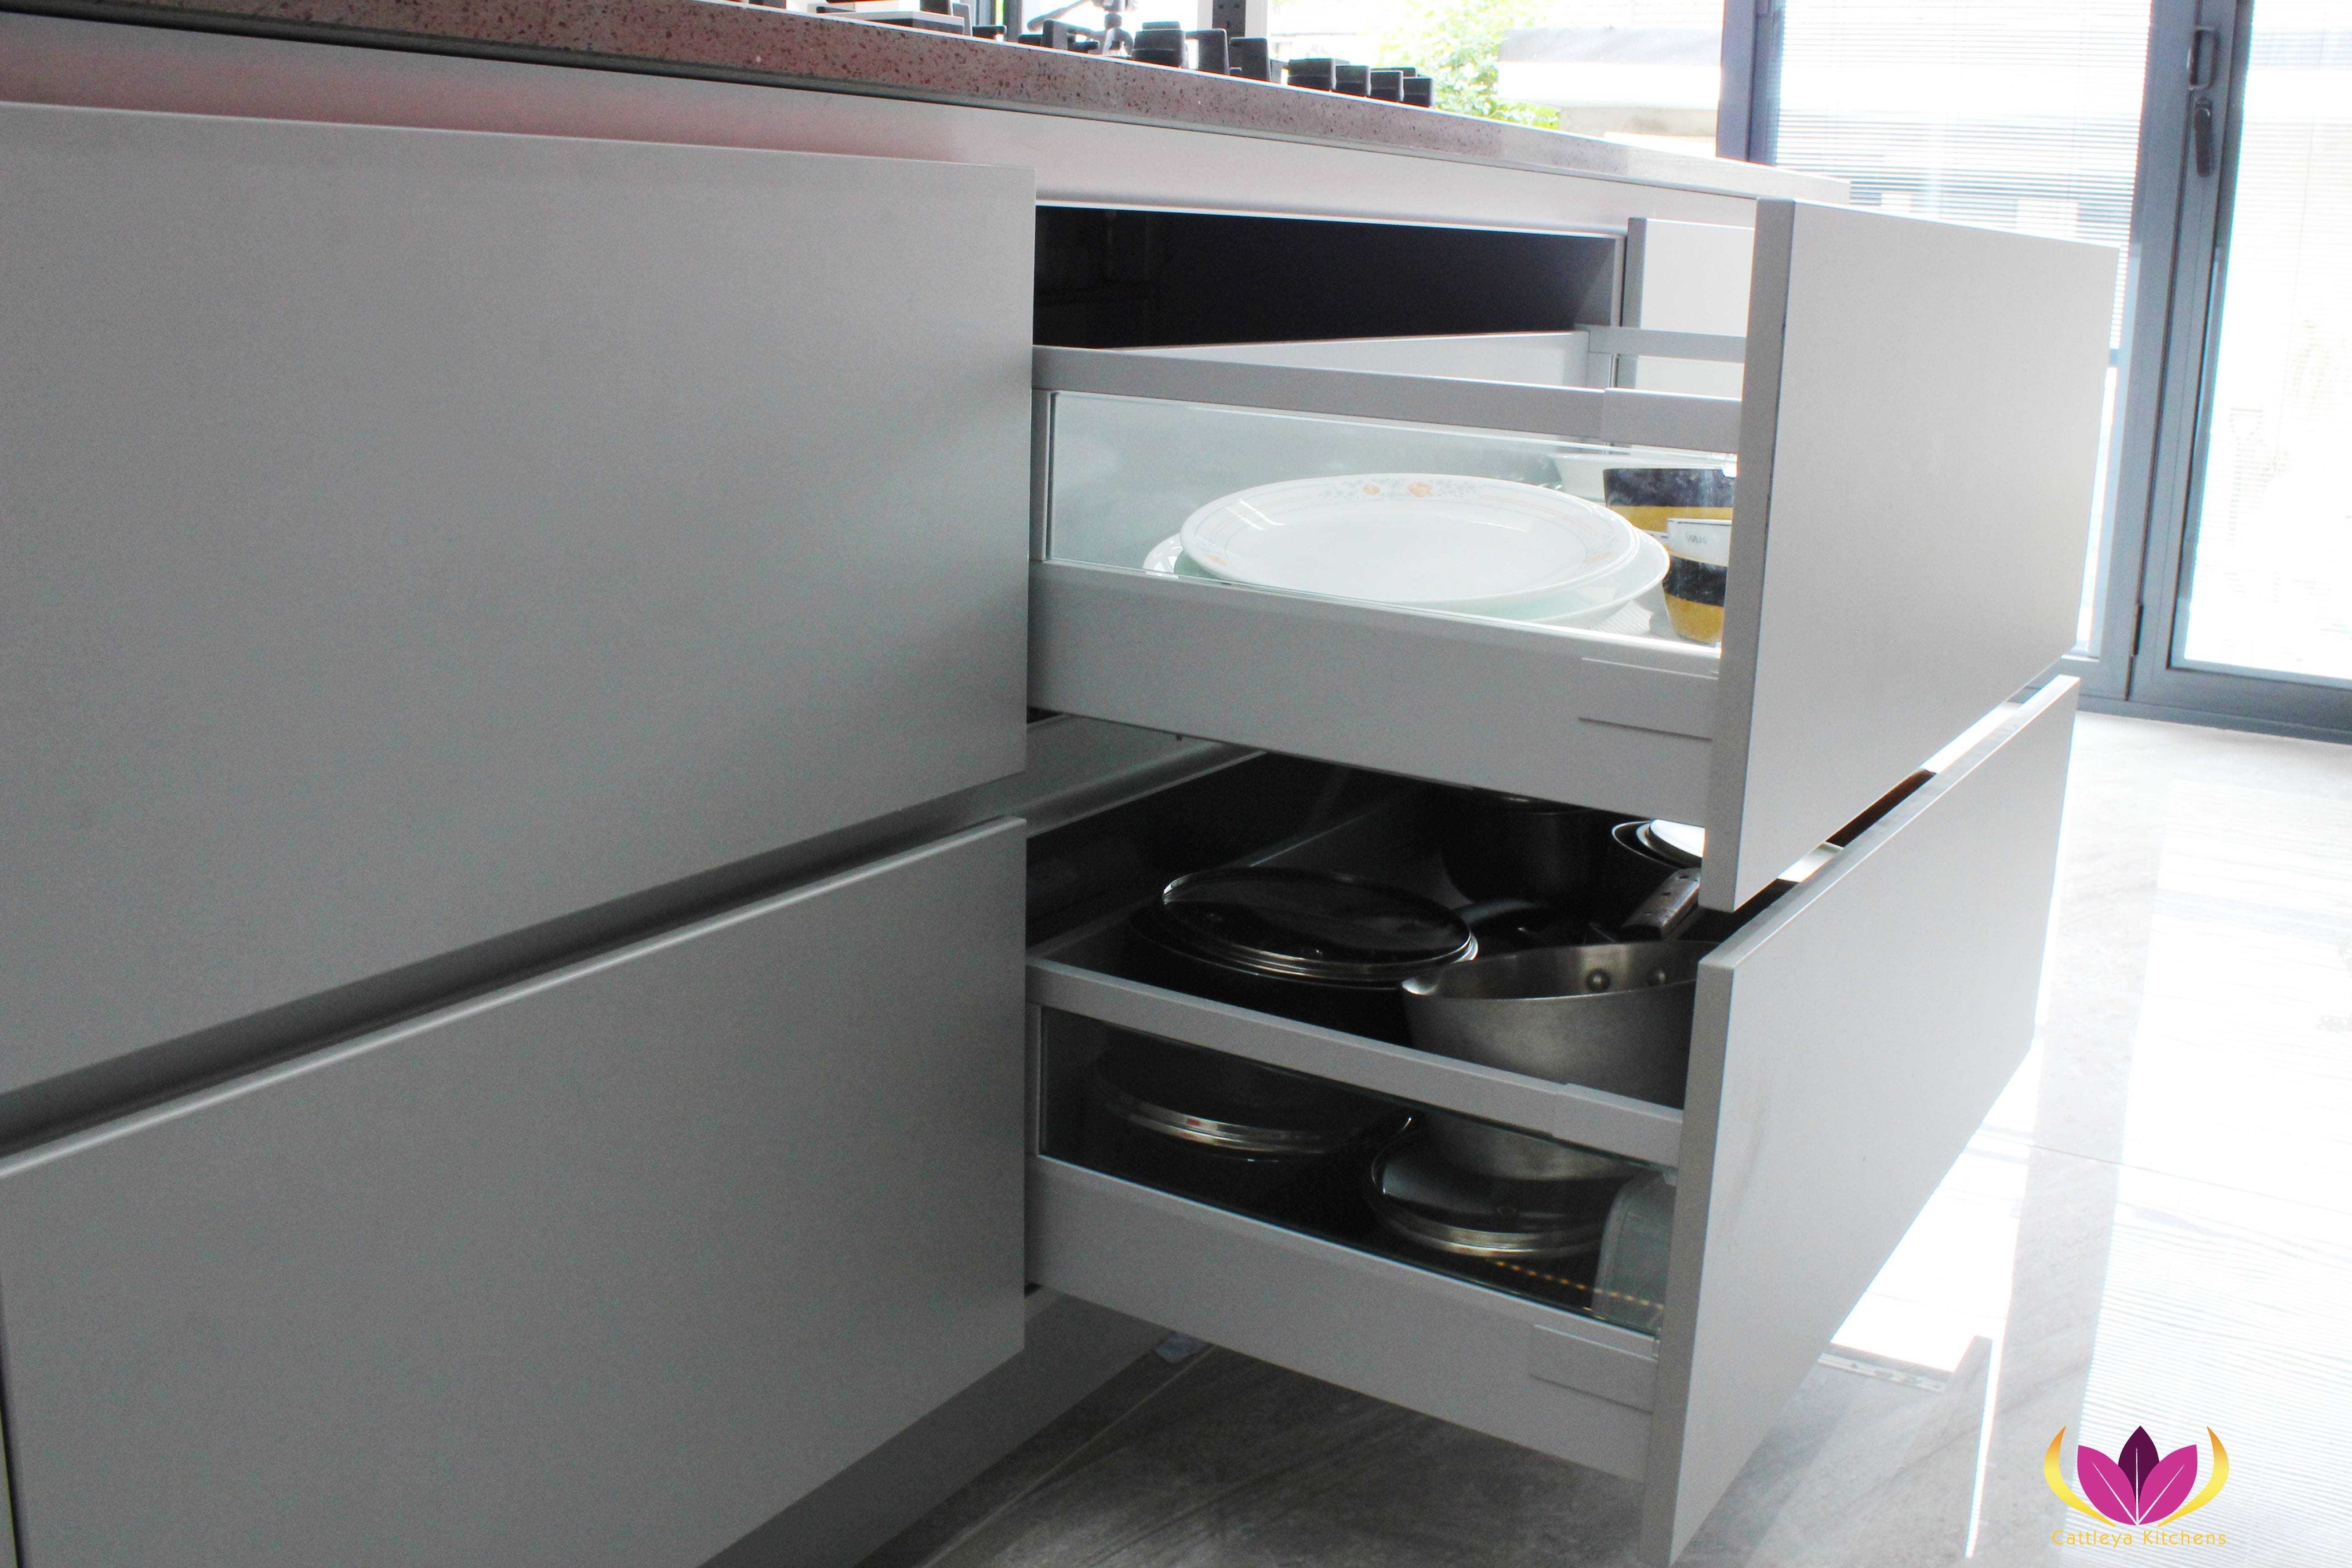 Drawers with glass side panel Gray & Gloss Red Perivale Finished Kitchen Project